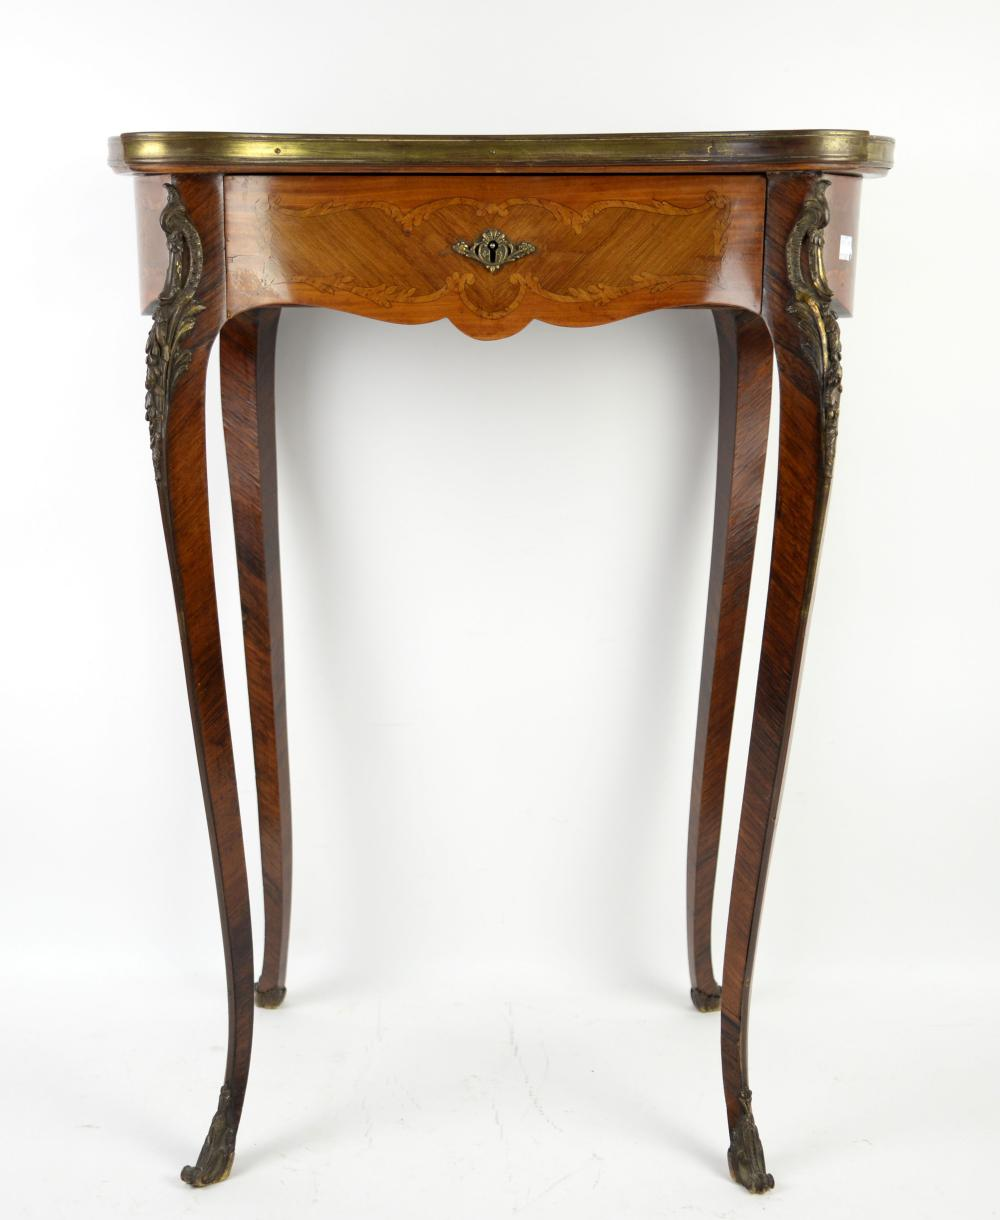 Early 20th century French kingwood and tulip wood